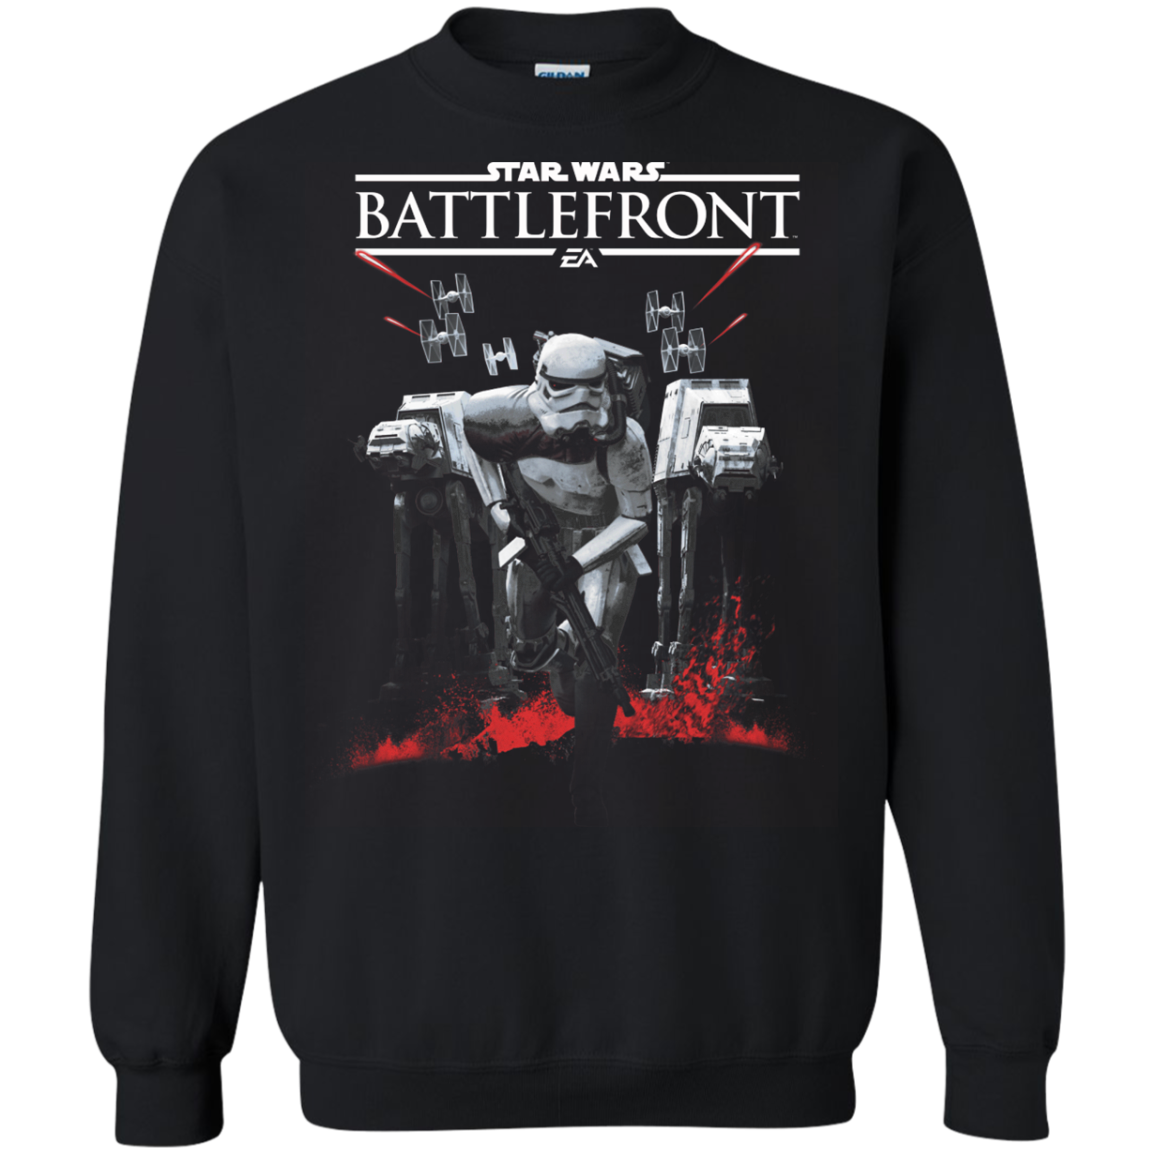 Battlefront Stormtrooper Charge Star Wars Shop Gifts T Shirts Hoodies Sweatshirts Tank Top